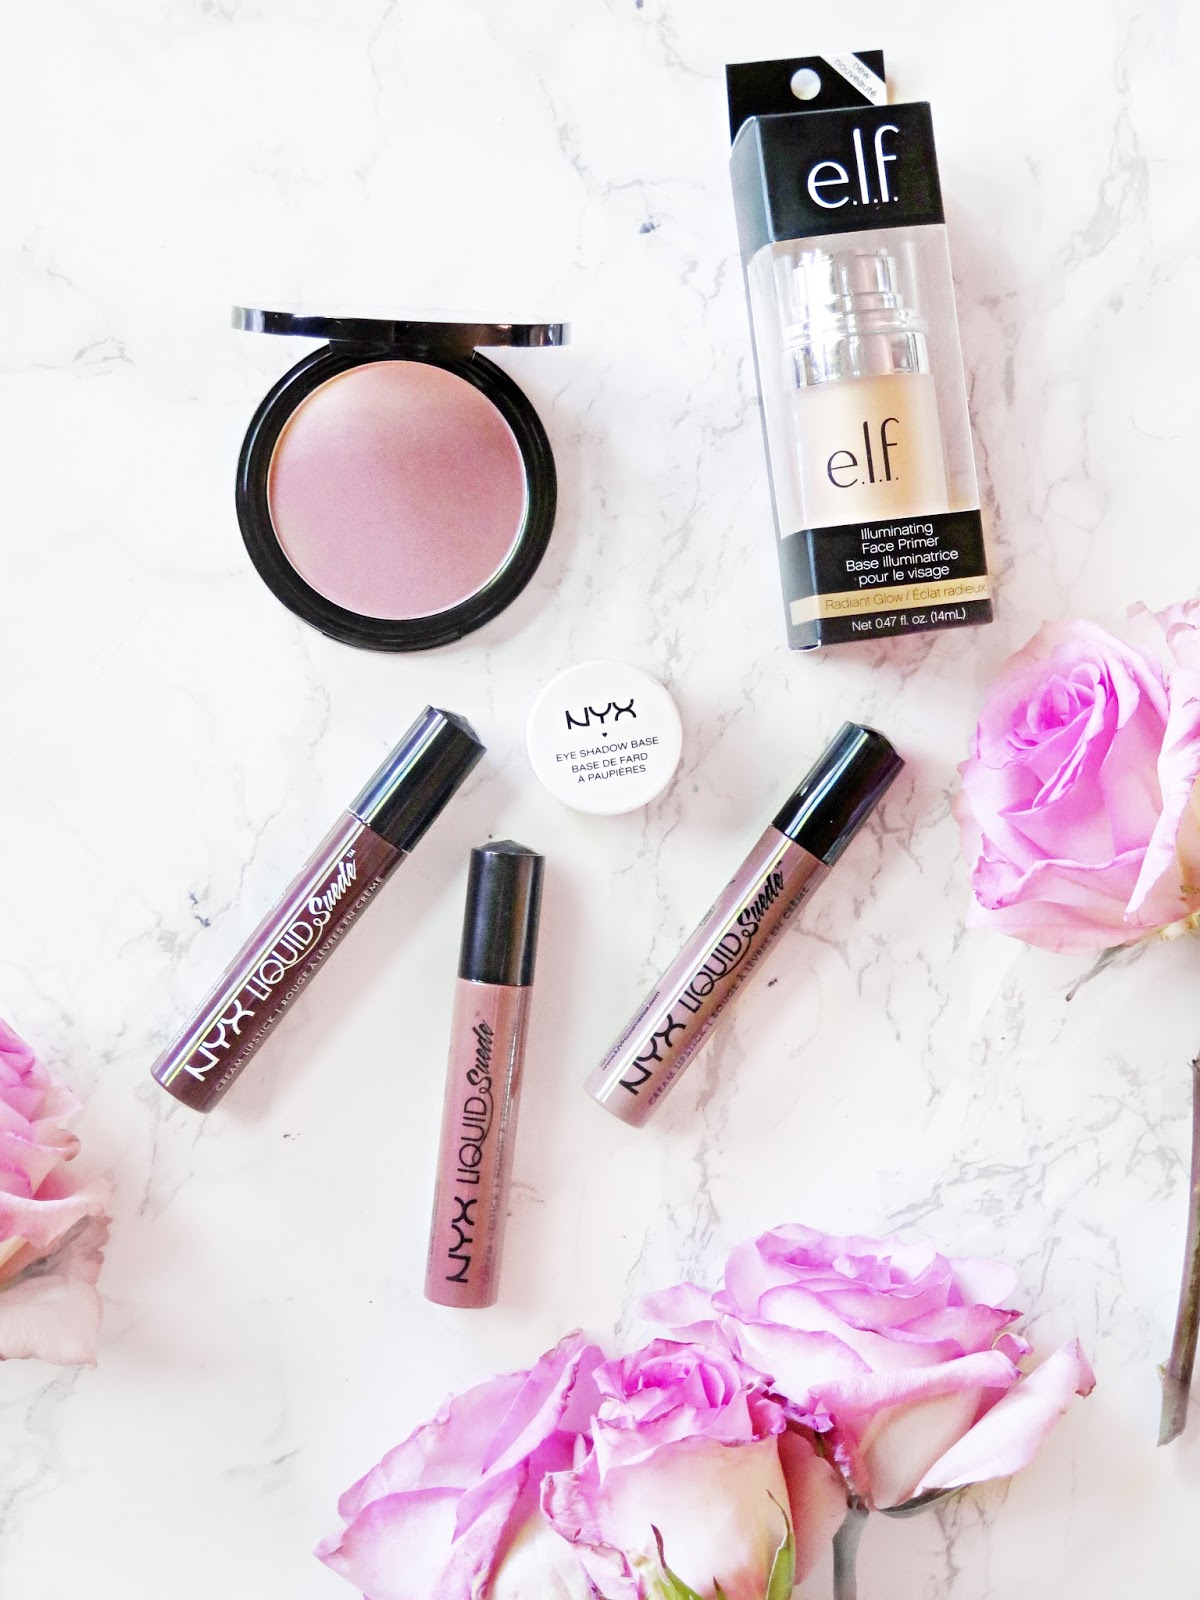 Latest Beauty Buys | Hard To Find Makeup From Milani, NYX & e.l.f | Haul & First Impressions | labellesirene.ca